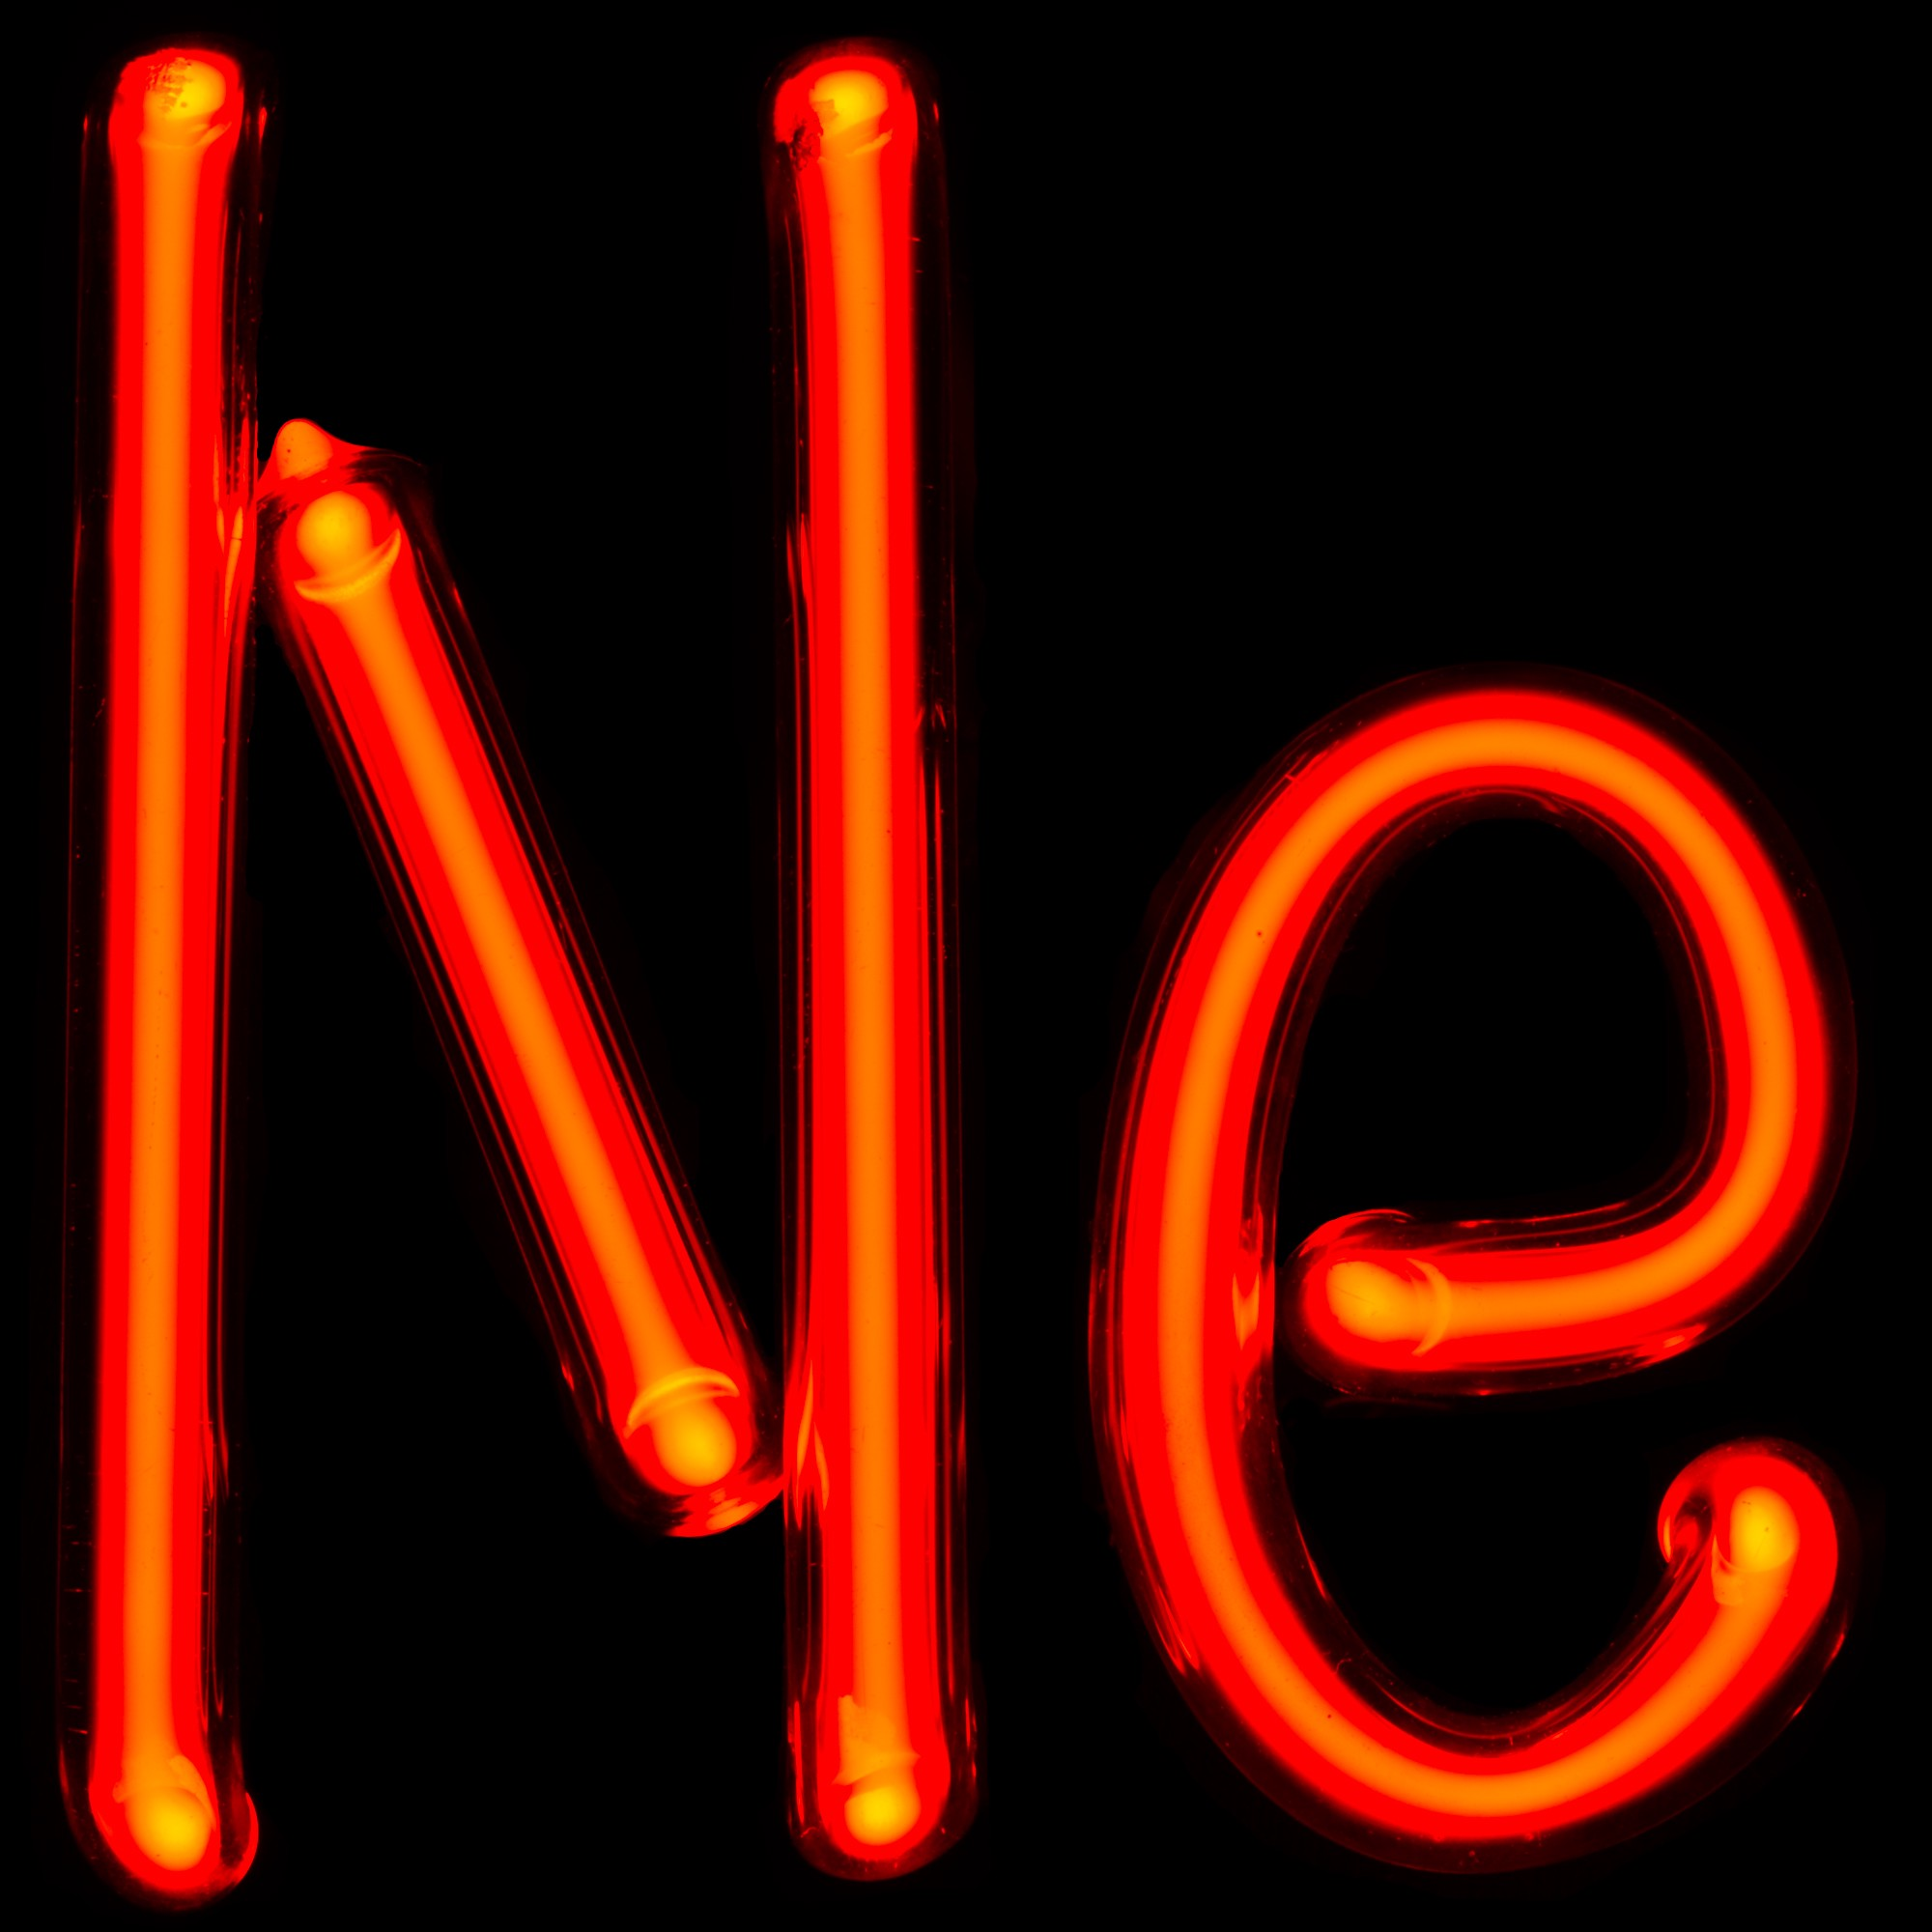 neon gas discharge lamps forming the symbol for neon ne credit pslawinski cc by sa 25